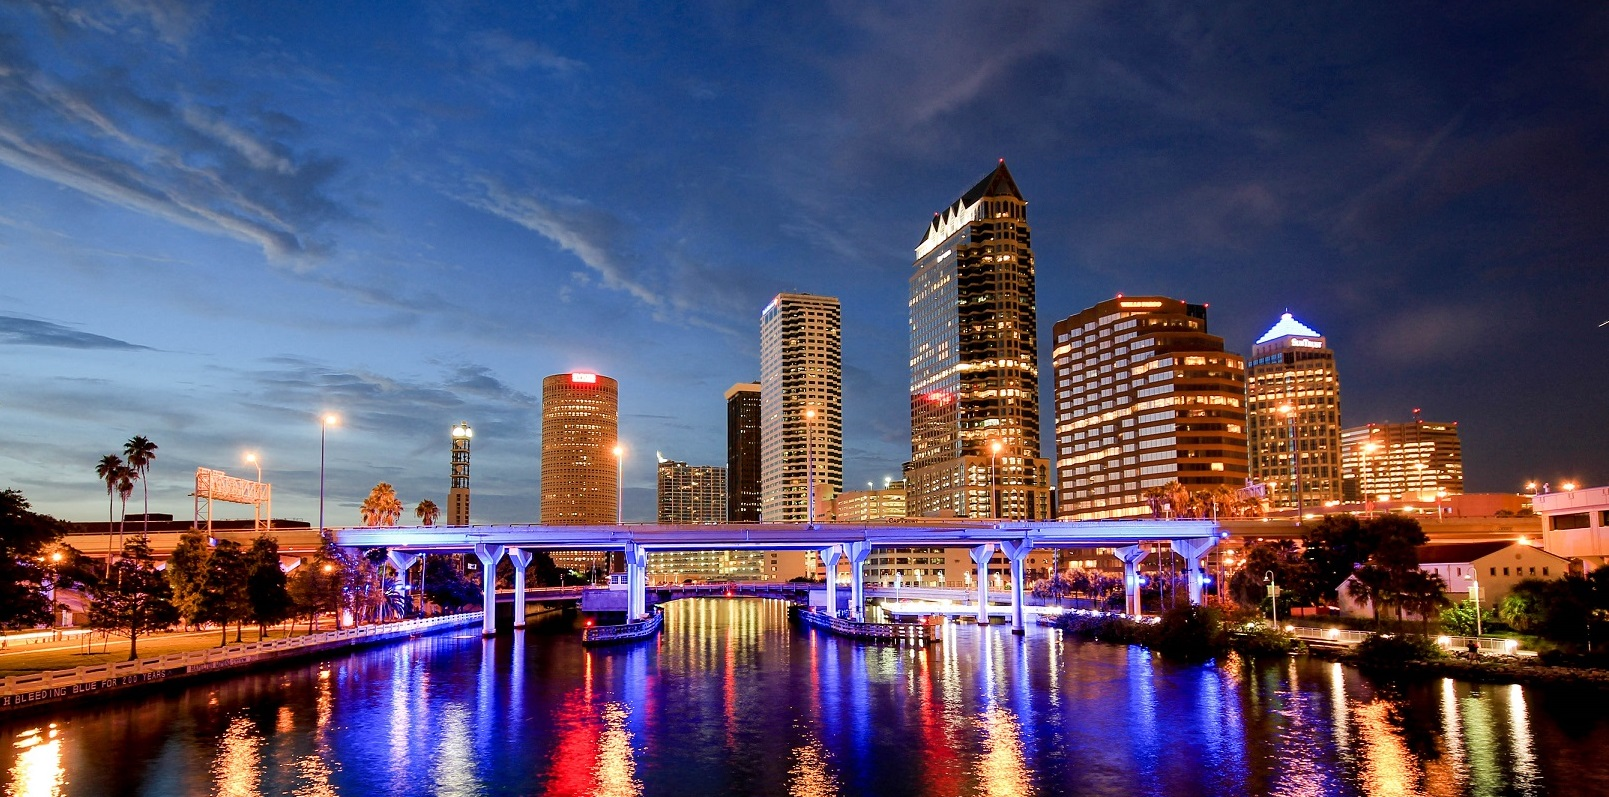 Tips for newbie Tampa residents that will help you get accustomed to this unique city and enjoy all that it has to offer